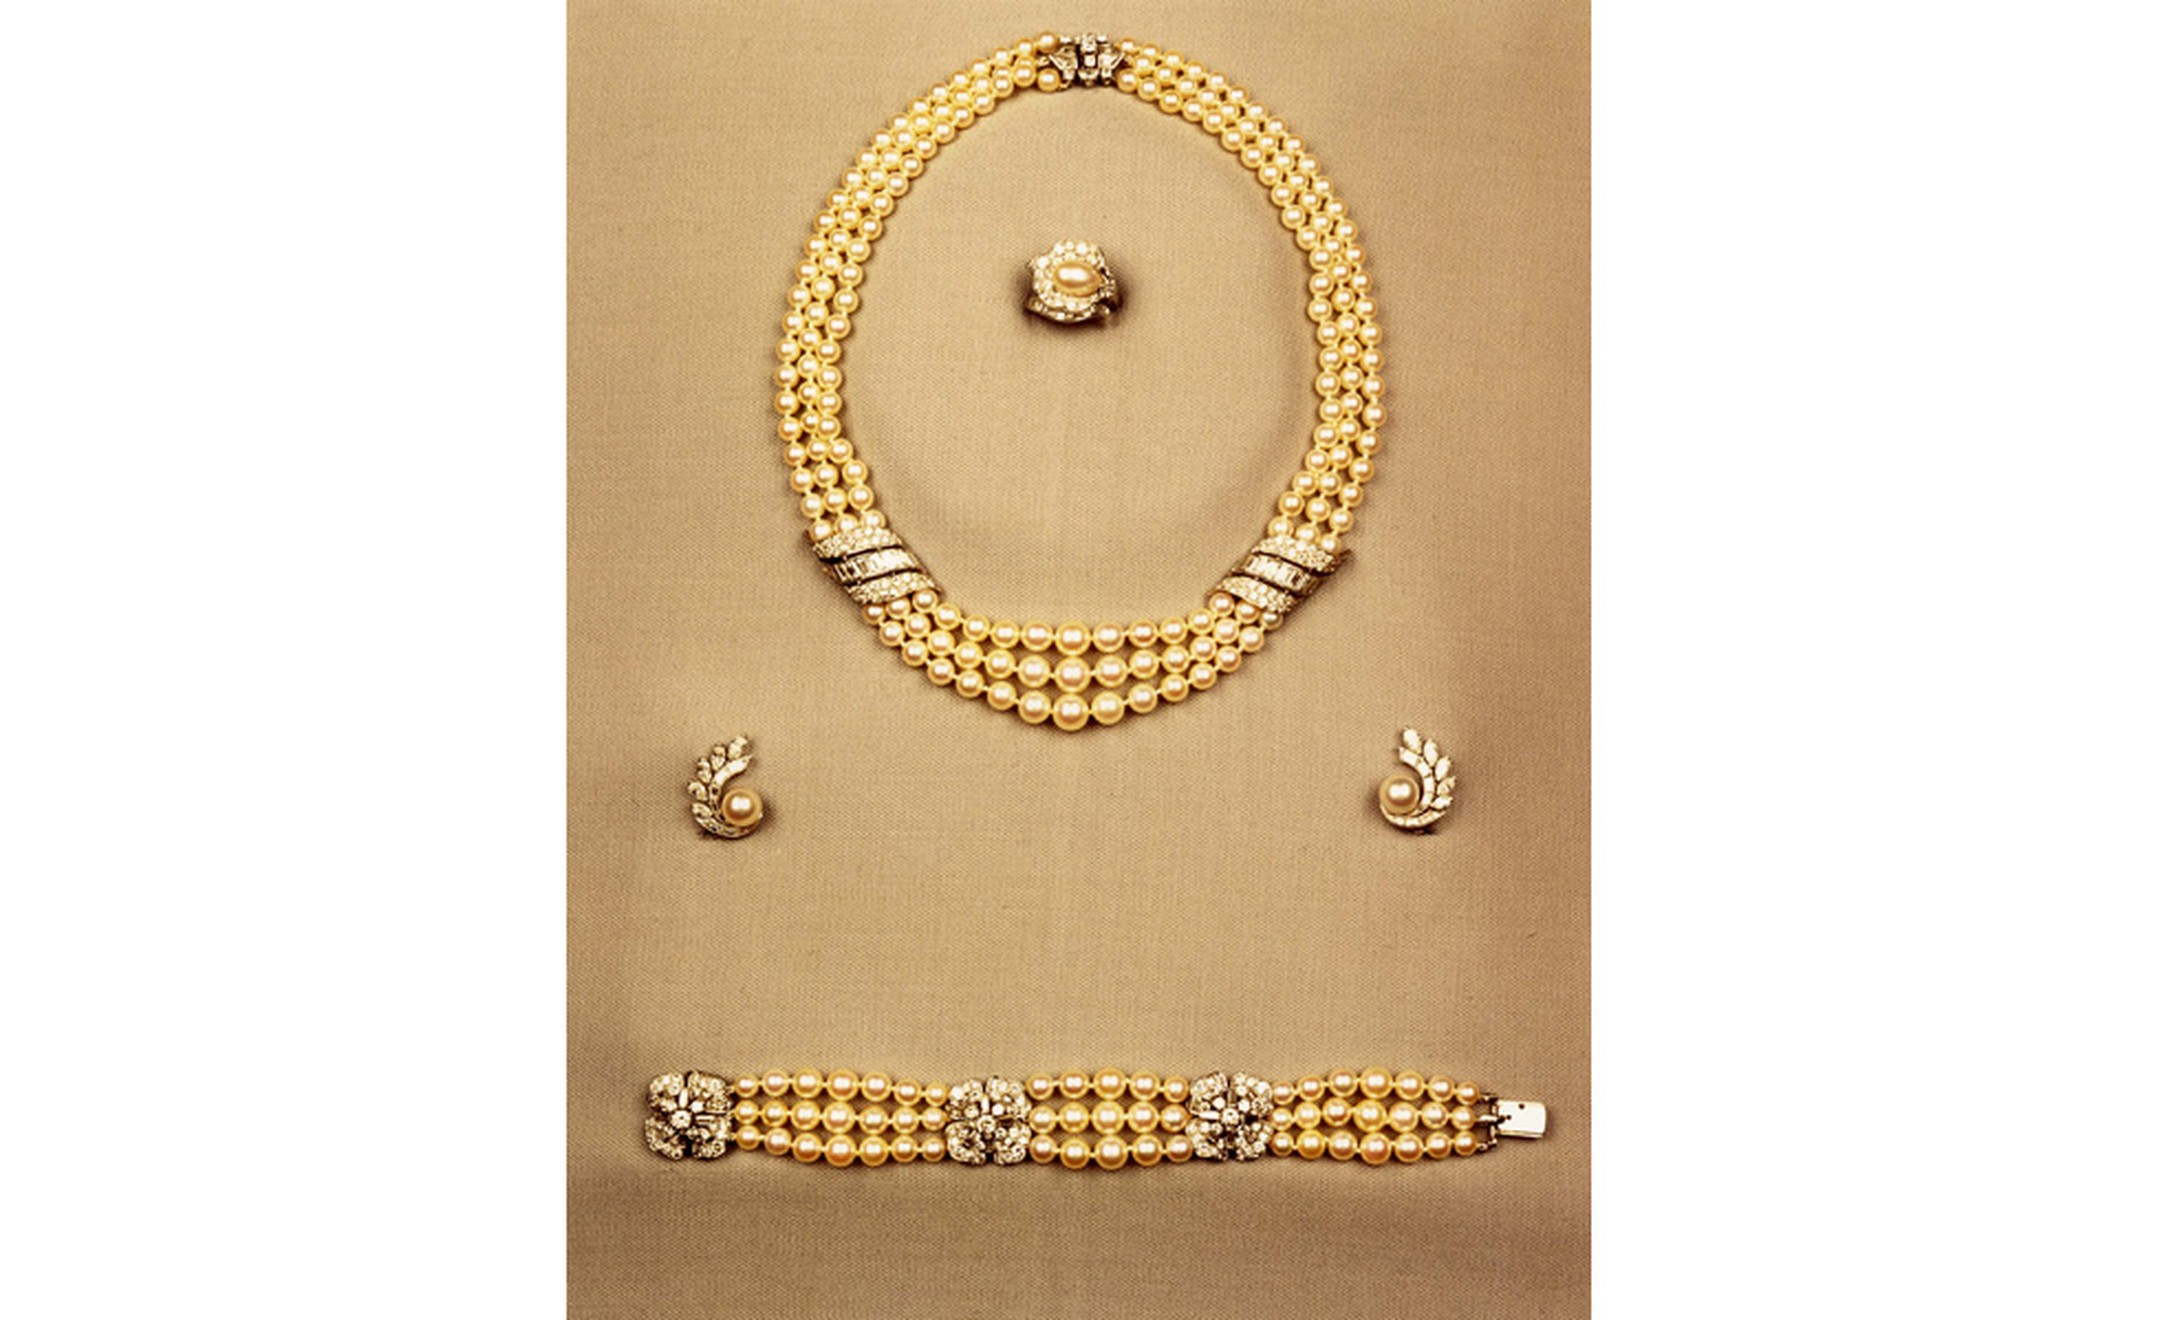 Van Cleef & Arpels set of engagement jewels belonging to Princess Grace.